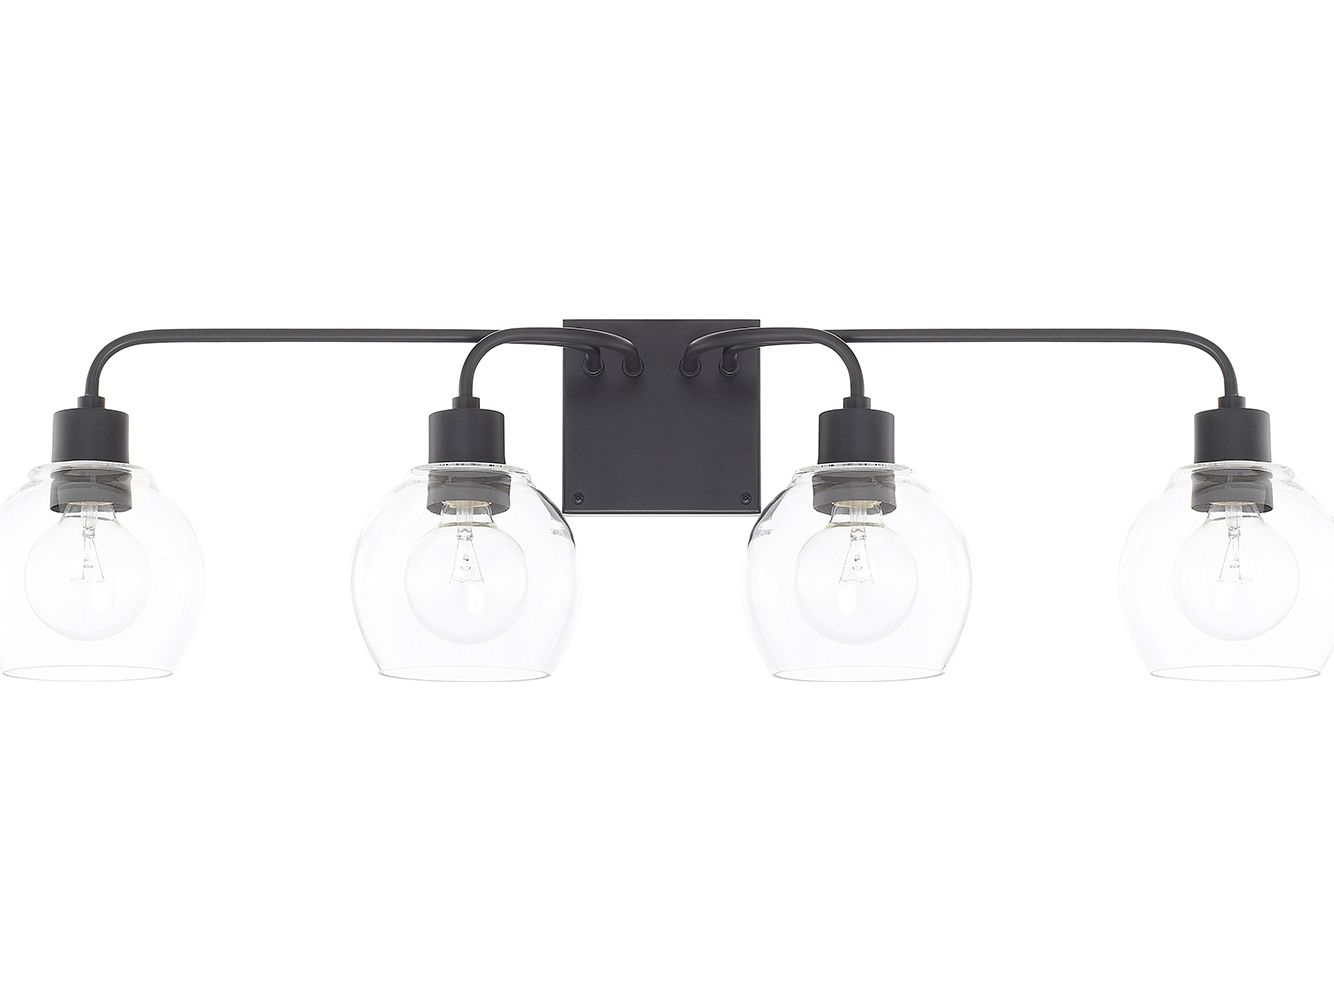 Capital Lighting Homeplace Matte Black Four Light Vanity Light Black Bathroom Light Black Vanity Light Capital Lighting